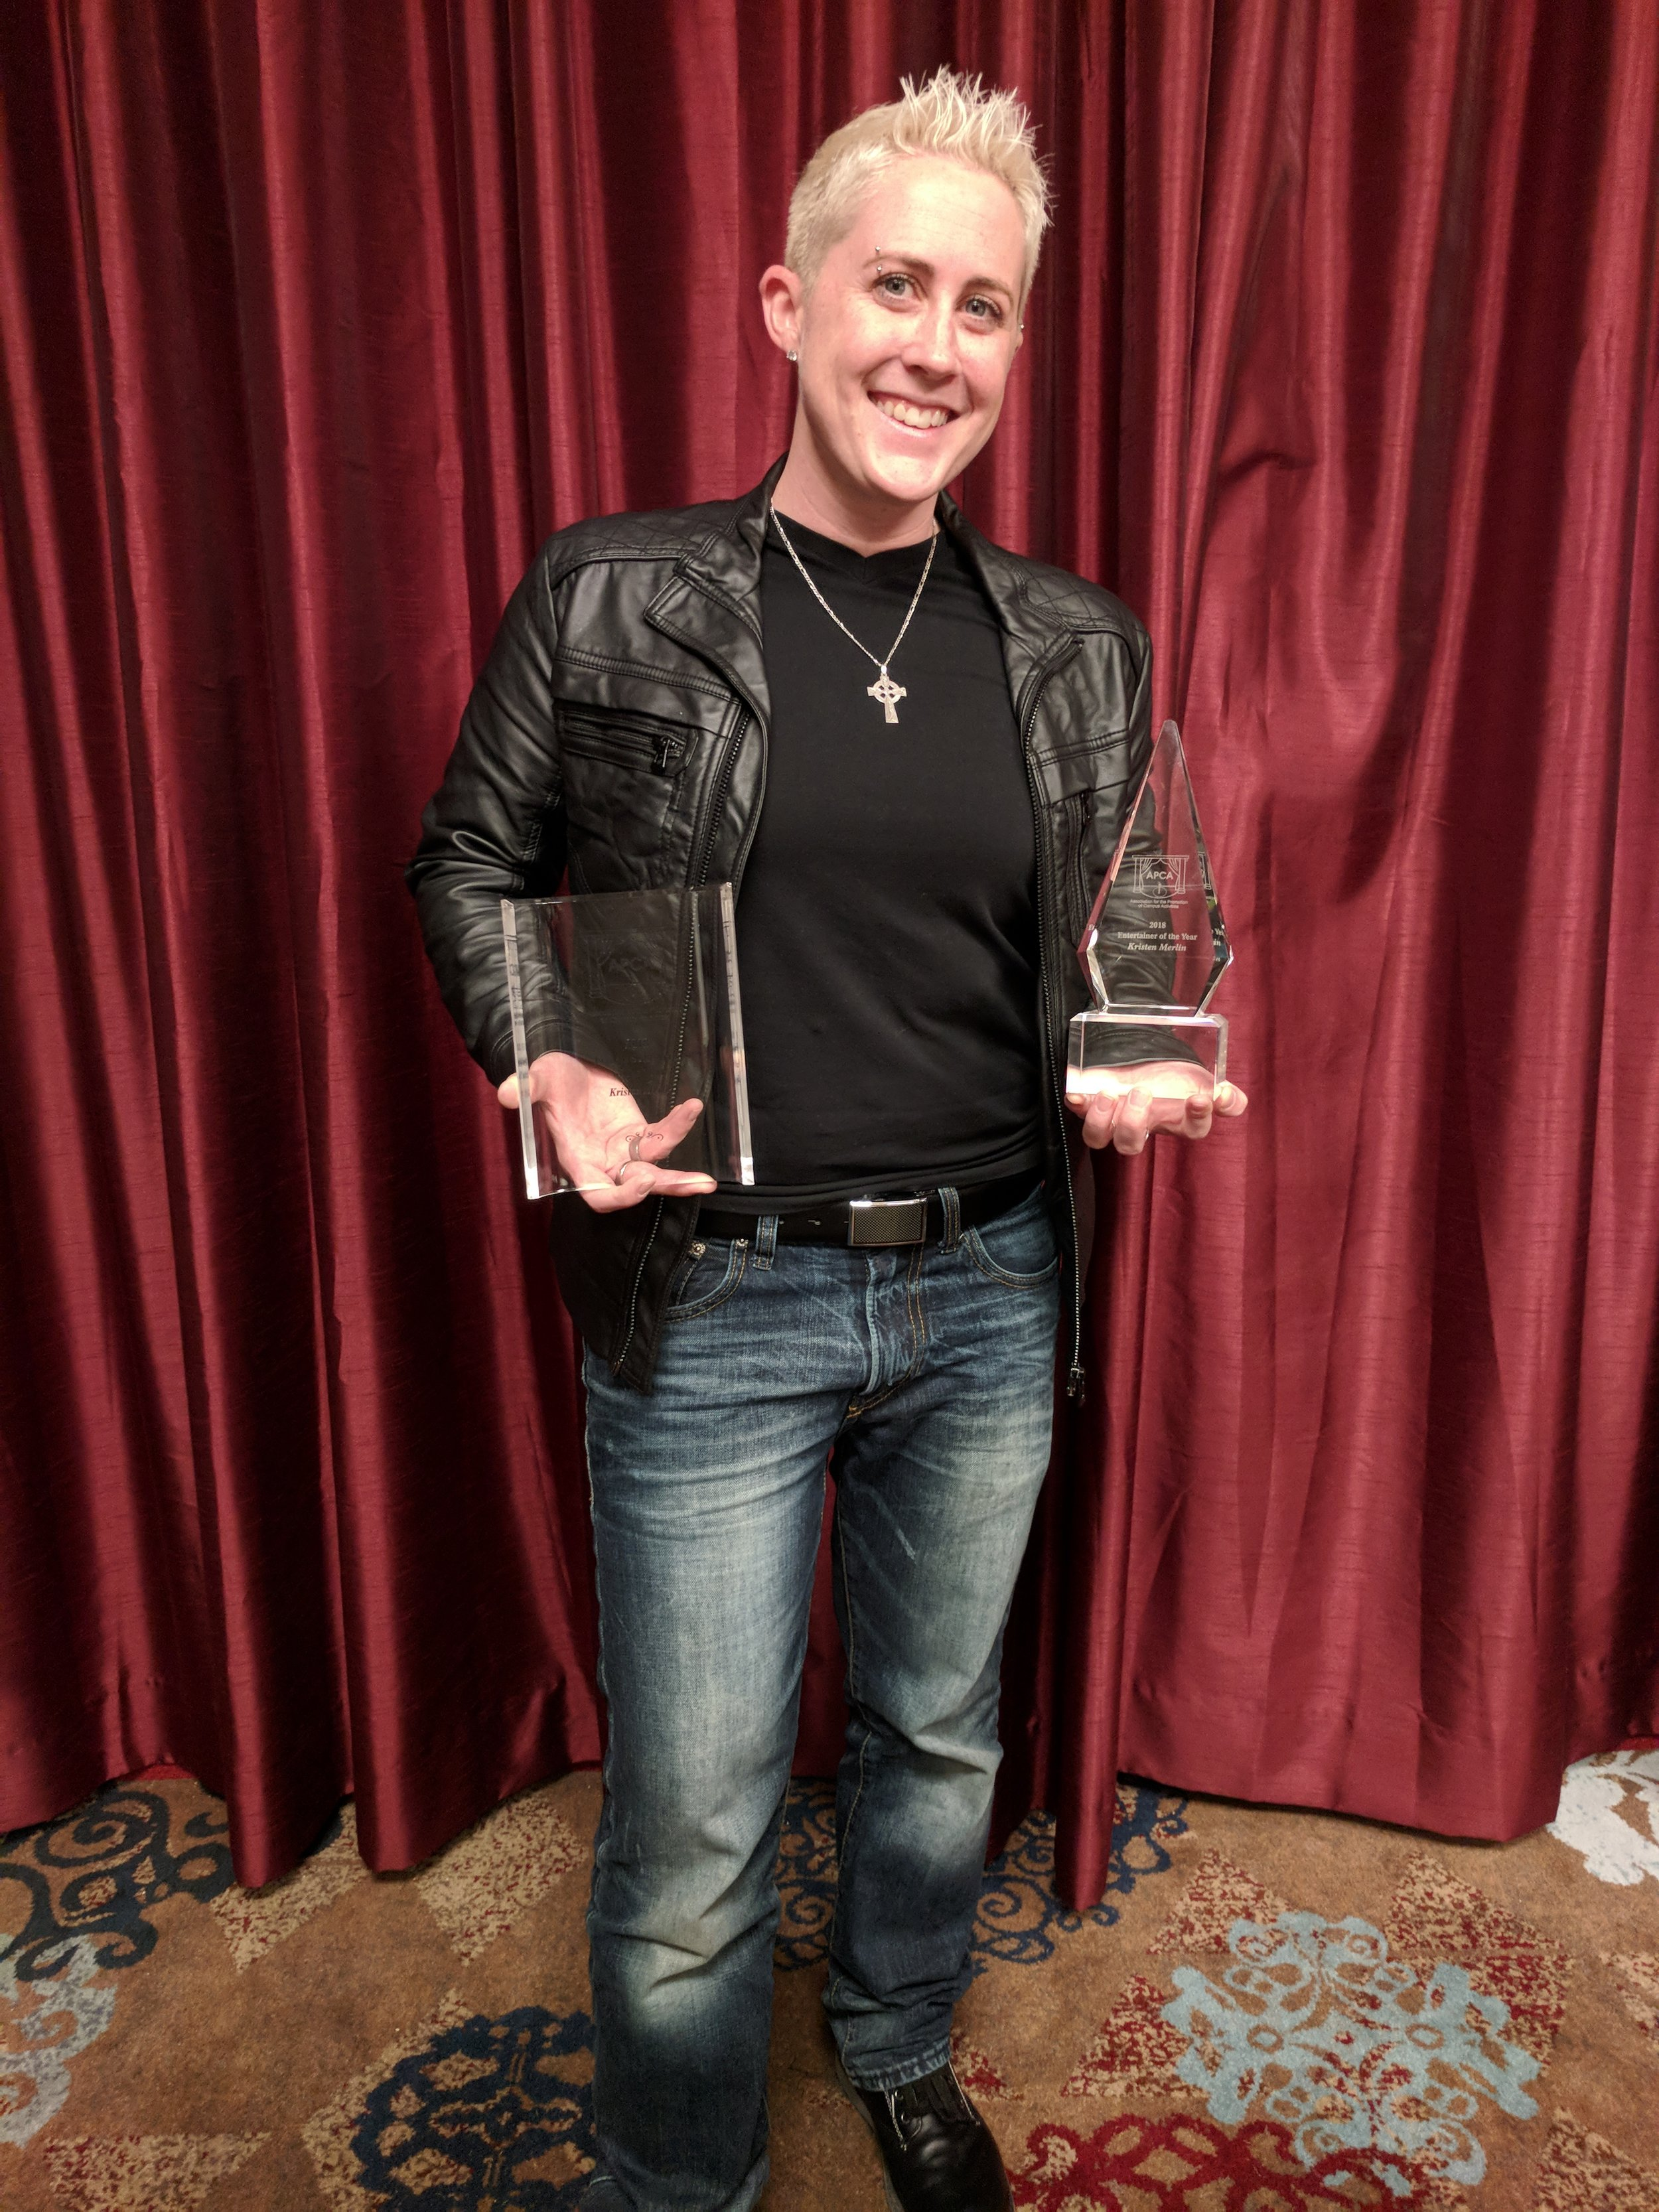 Kristen Merlin - Entertainer of the Year and Female Solo Artist of the Year